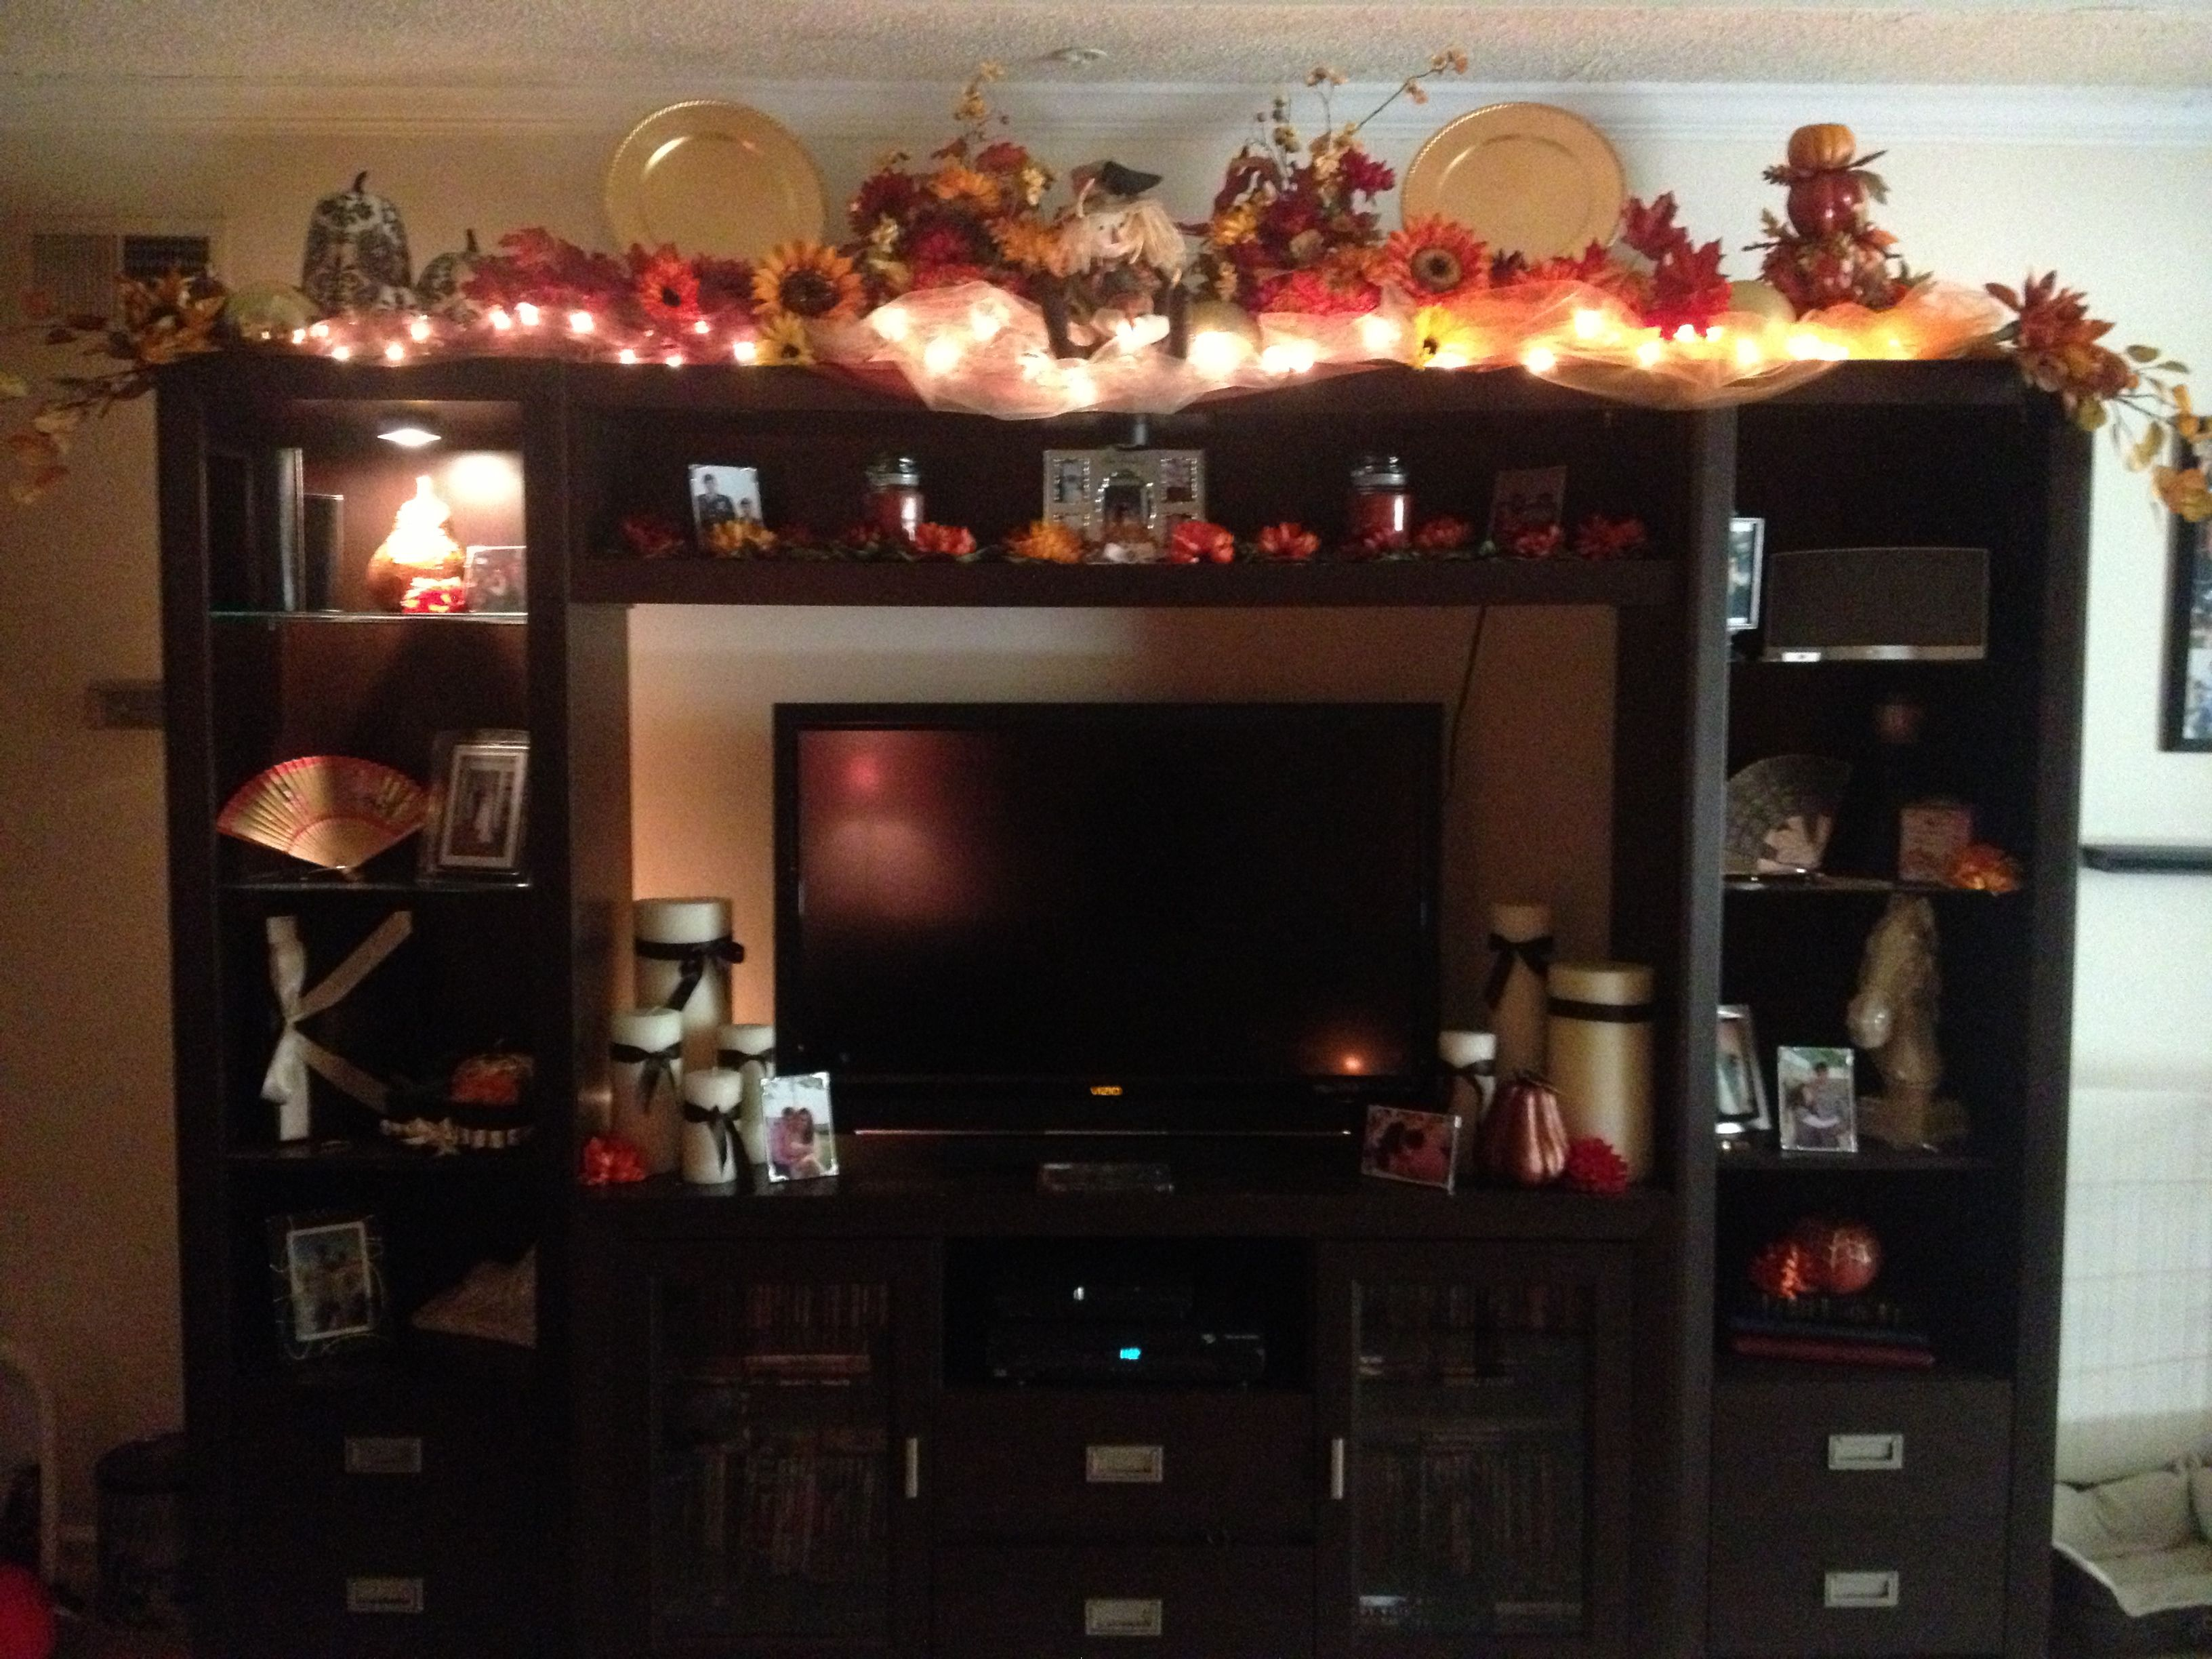 Festive season holiday decor for top of entertainment for Decorating entertainment center ideas